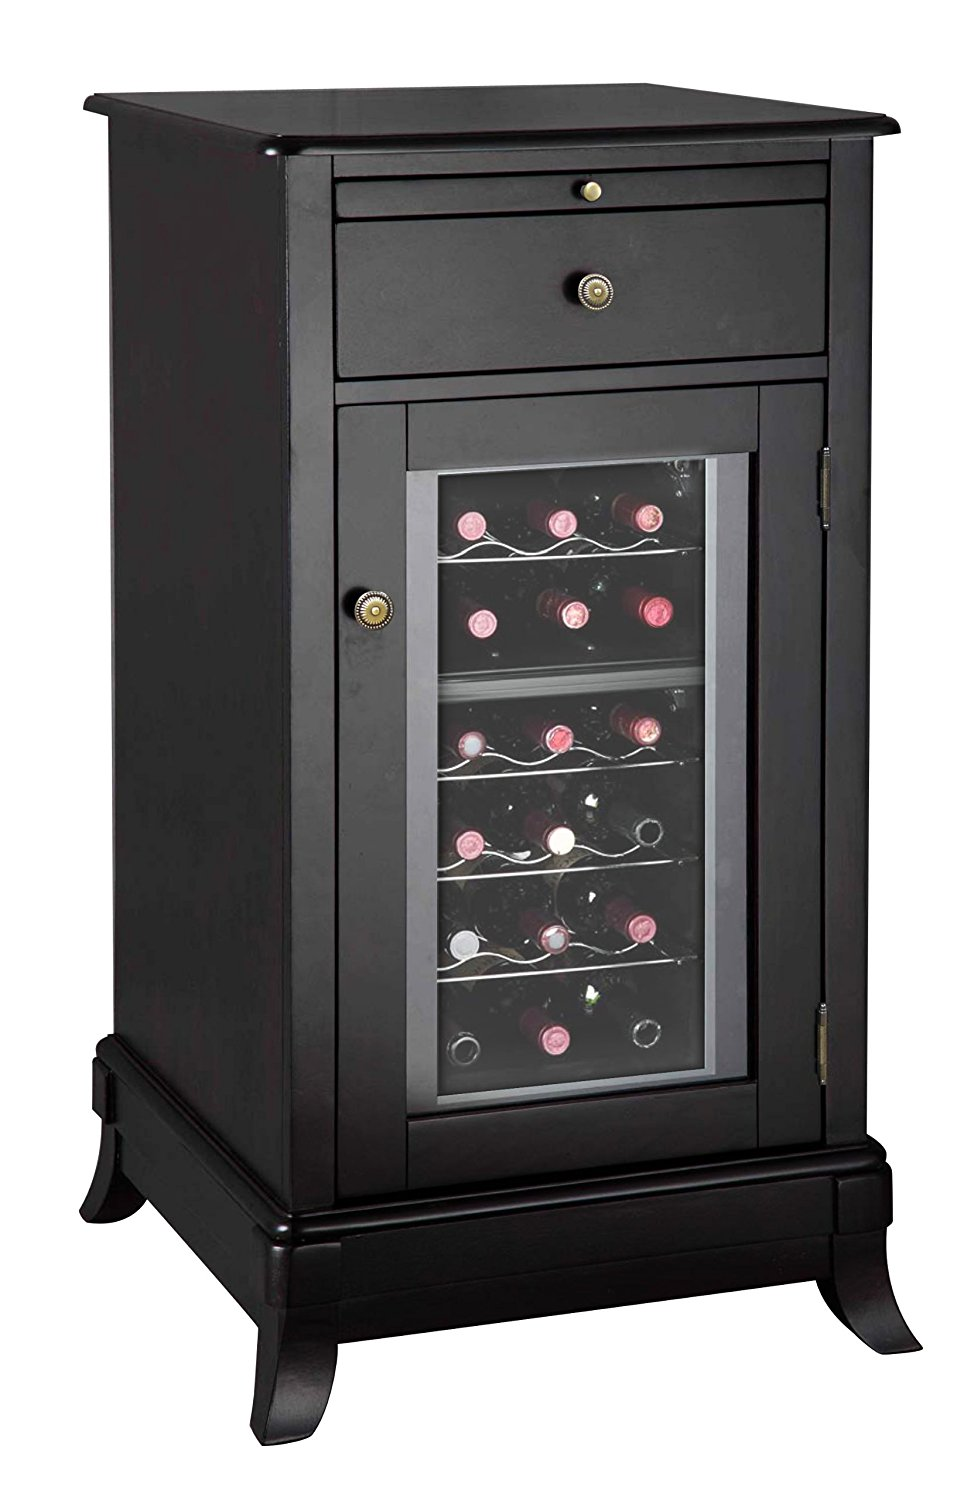 Top Overall Vinotemp Wine Cooler For Home Storage